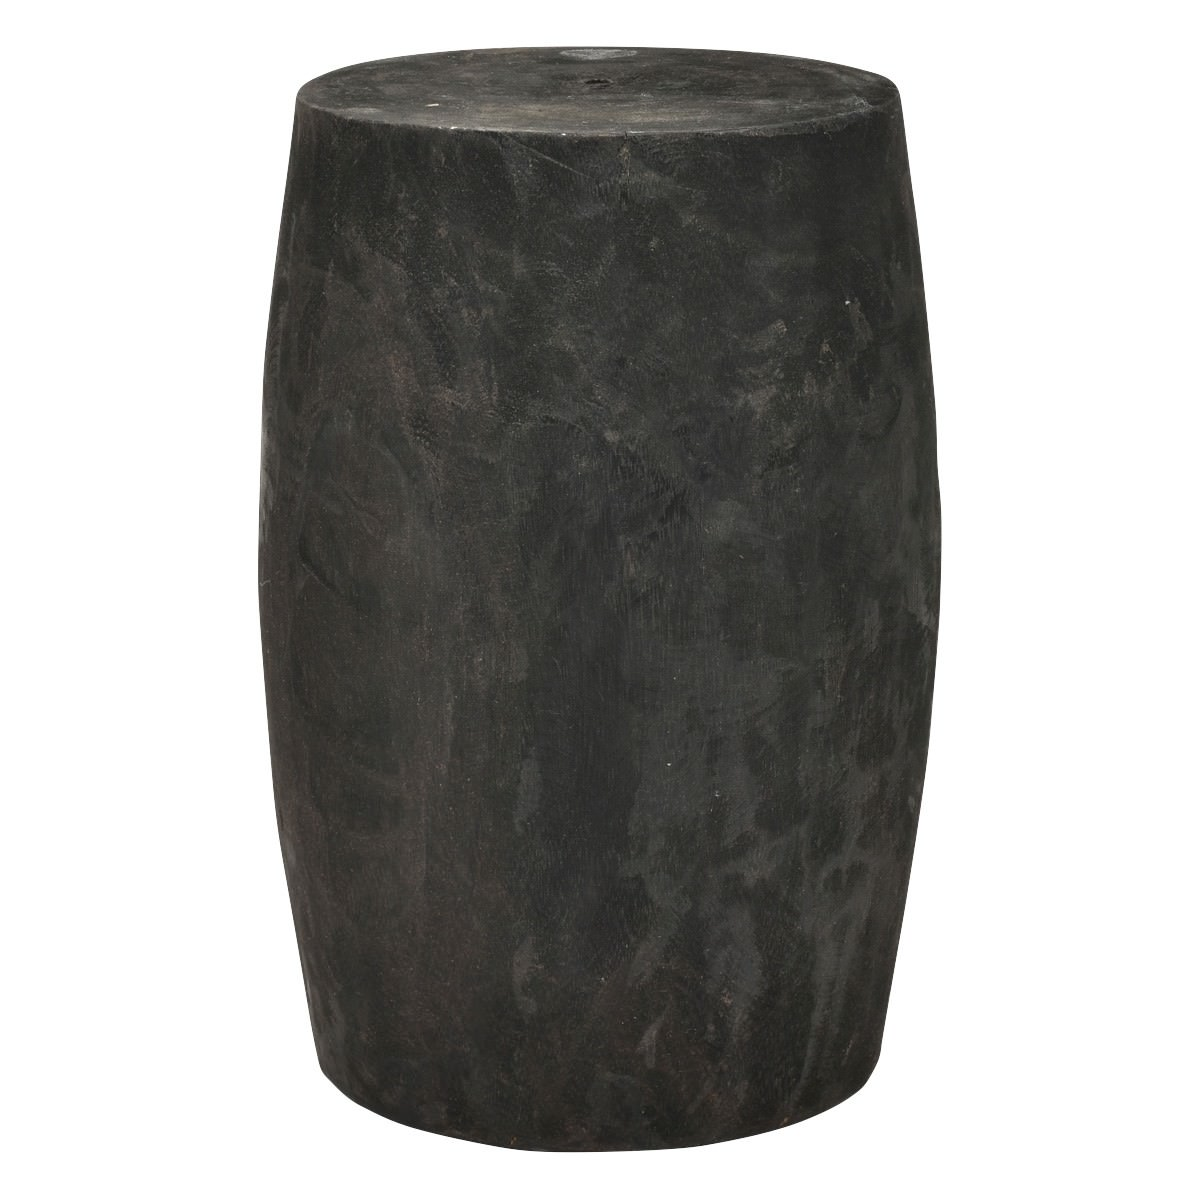 Jayapura Paulownia Wood Decor Drum Stool, Small, Black